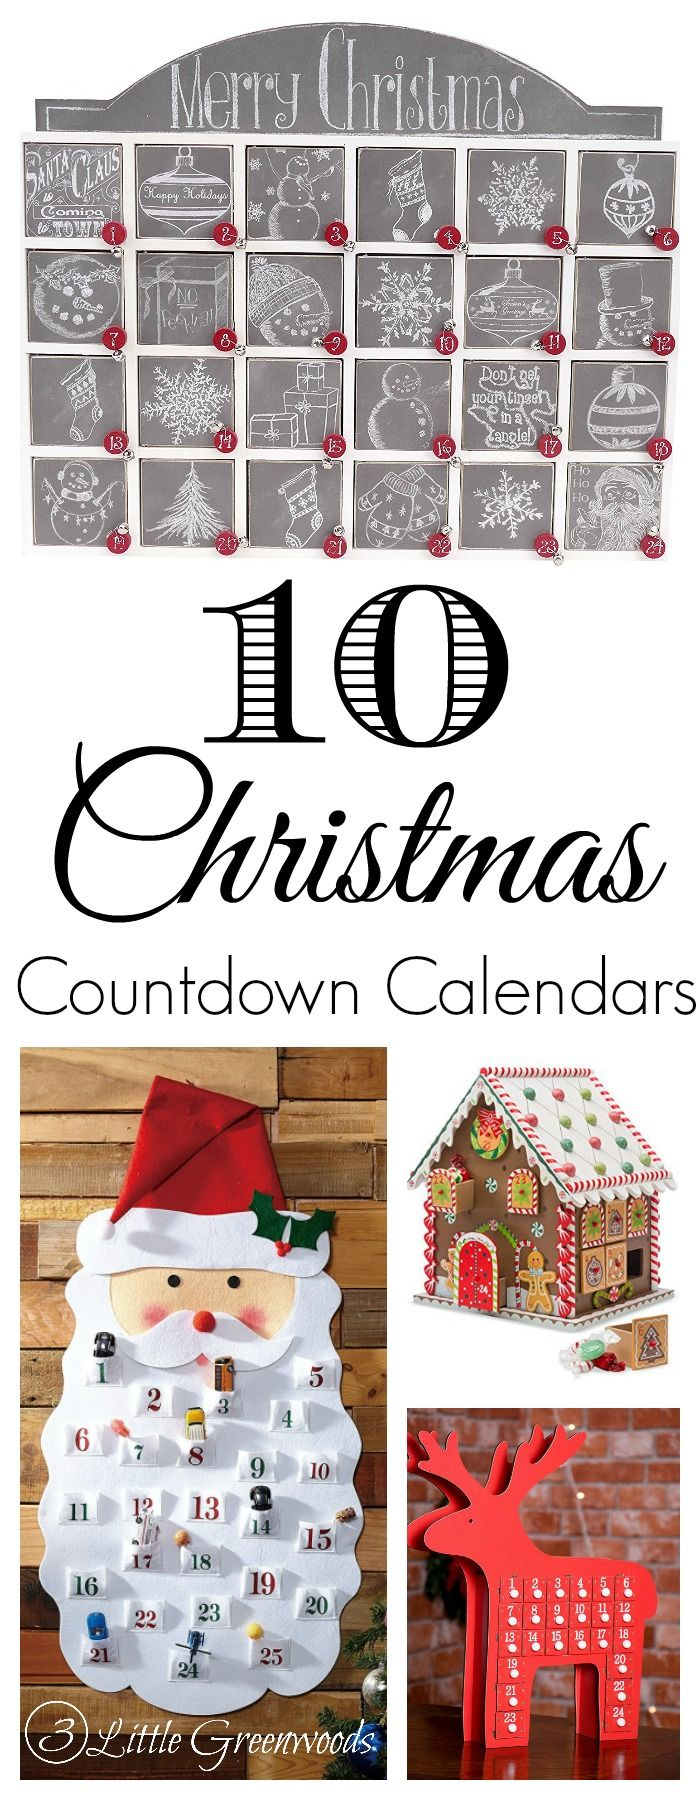 Start a new Christmas tradition is year with Christmas Countdown Calendars! It's a family friendly Christmas activity that your children will always remember!